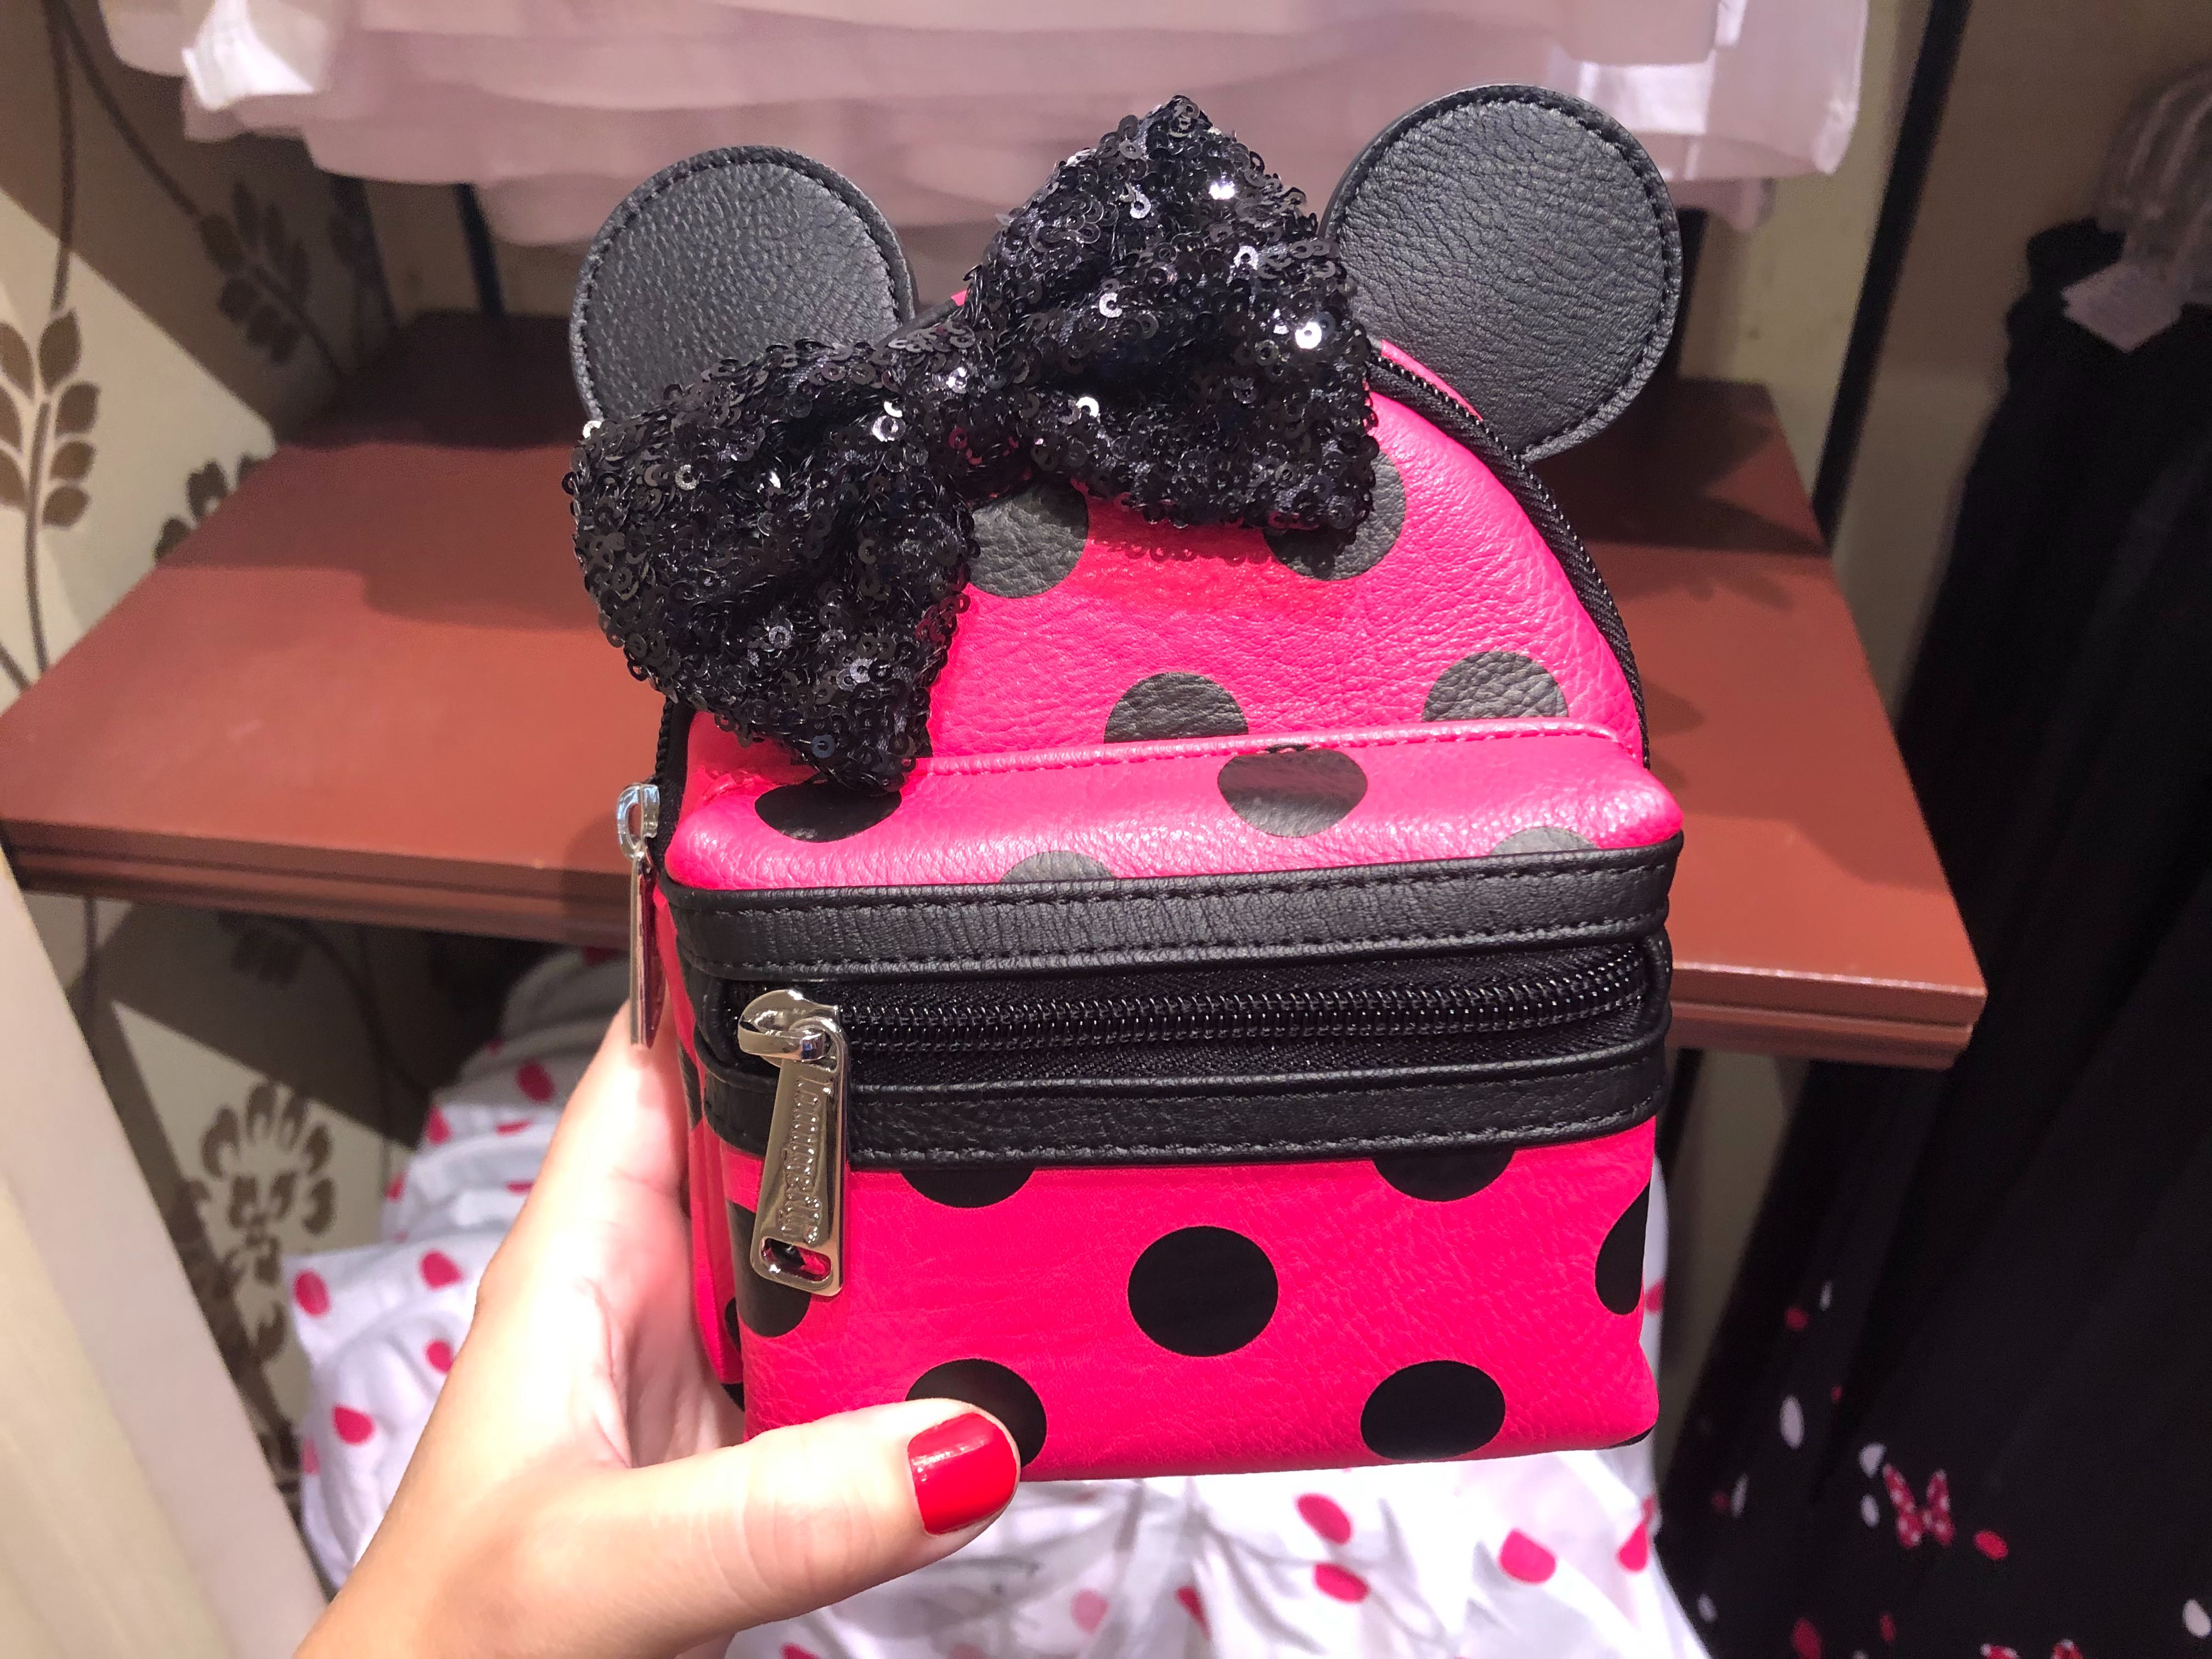 rock the dots Minnie Mouse loungefly